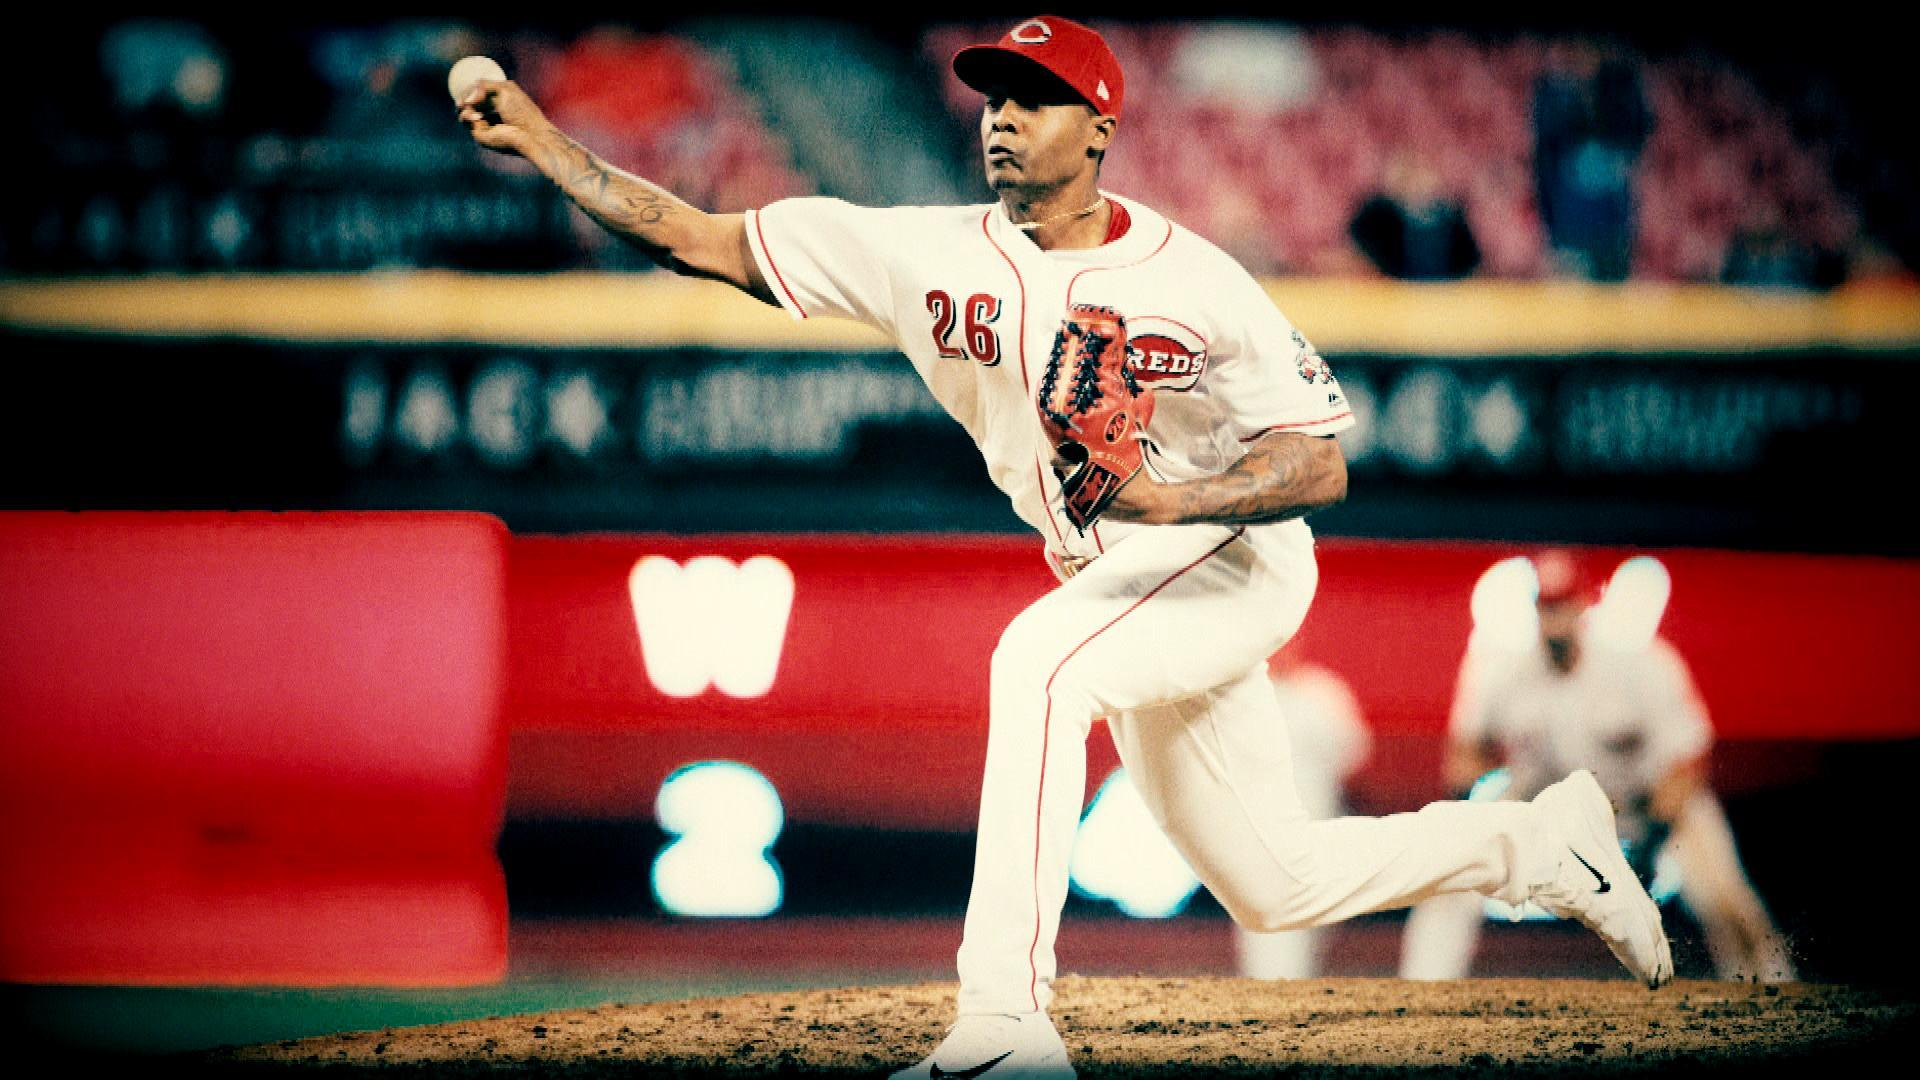 2019 Fantasy Baseball Preview: Raisel Iglesias, Cincinnati Reds